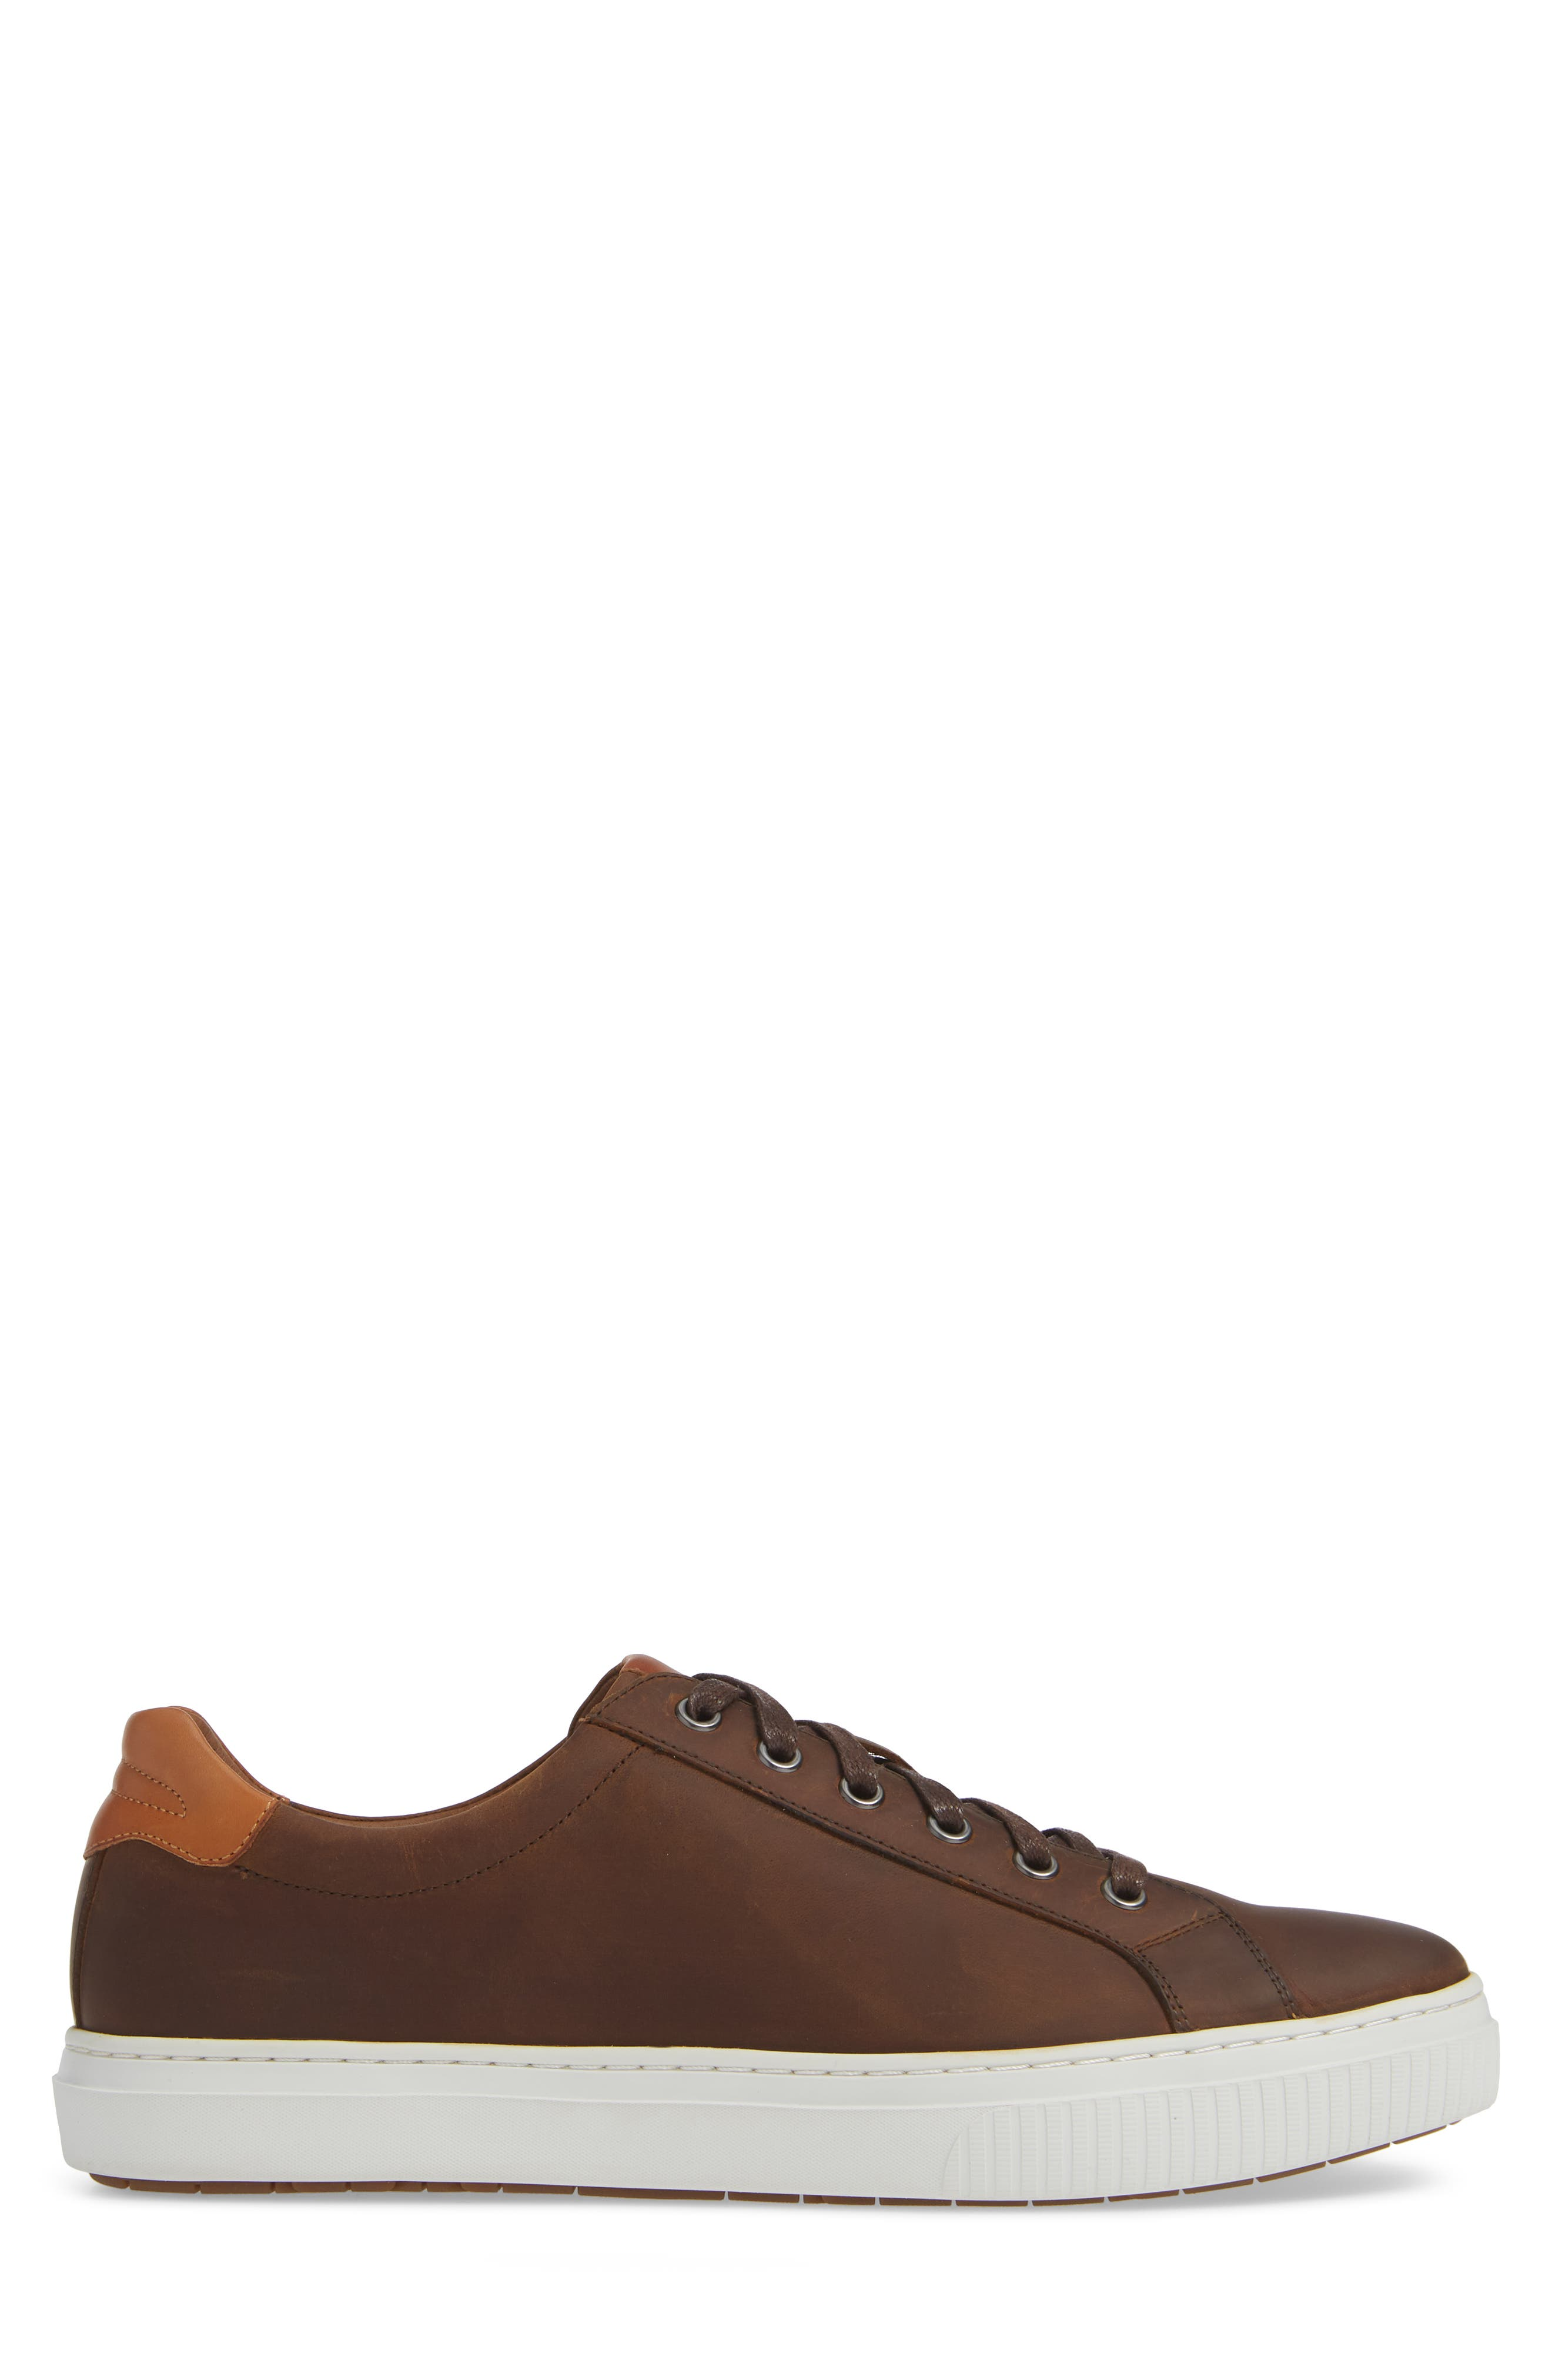 Toliver Low Top Sneaker,                             Alternate thumbnail 3, color,                             TAN LEATHER